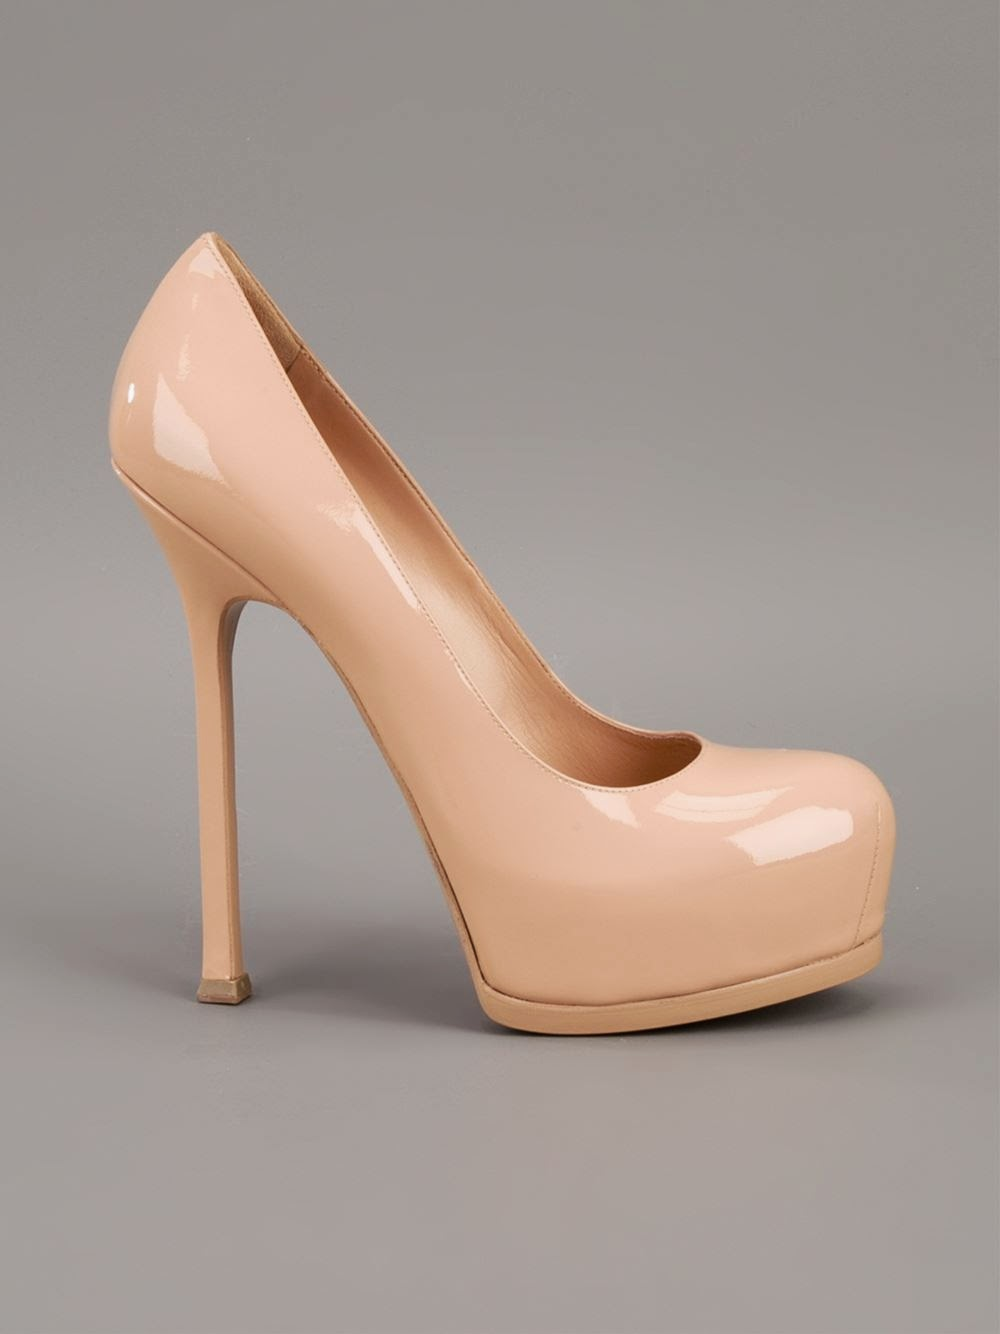 Yves Saint Laurent Tribtoo Patent Pumps